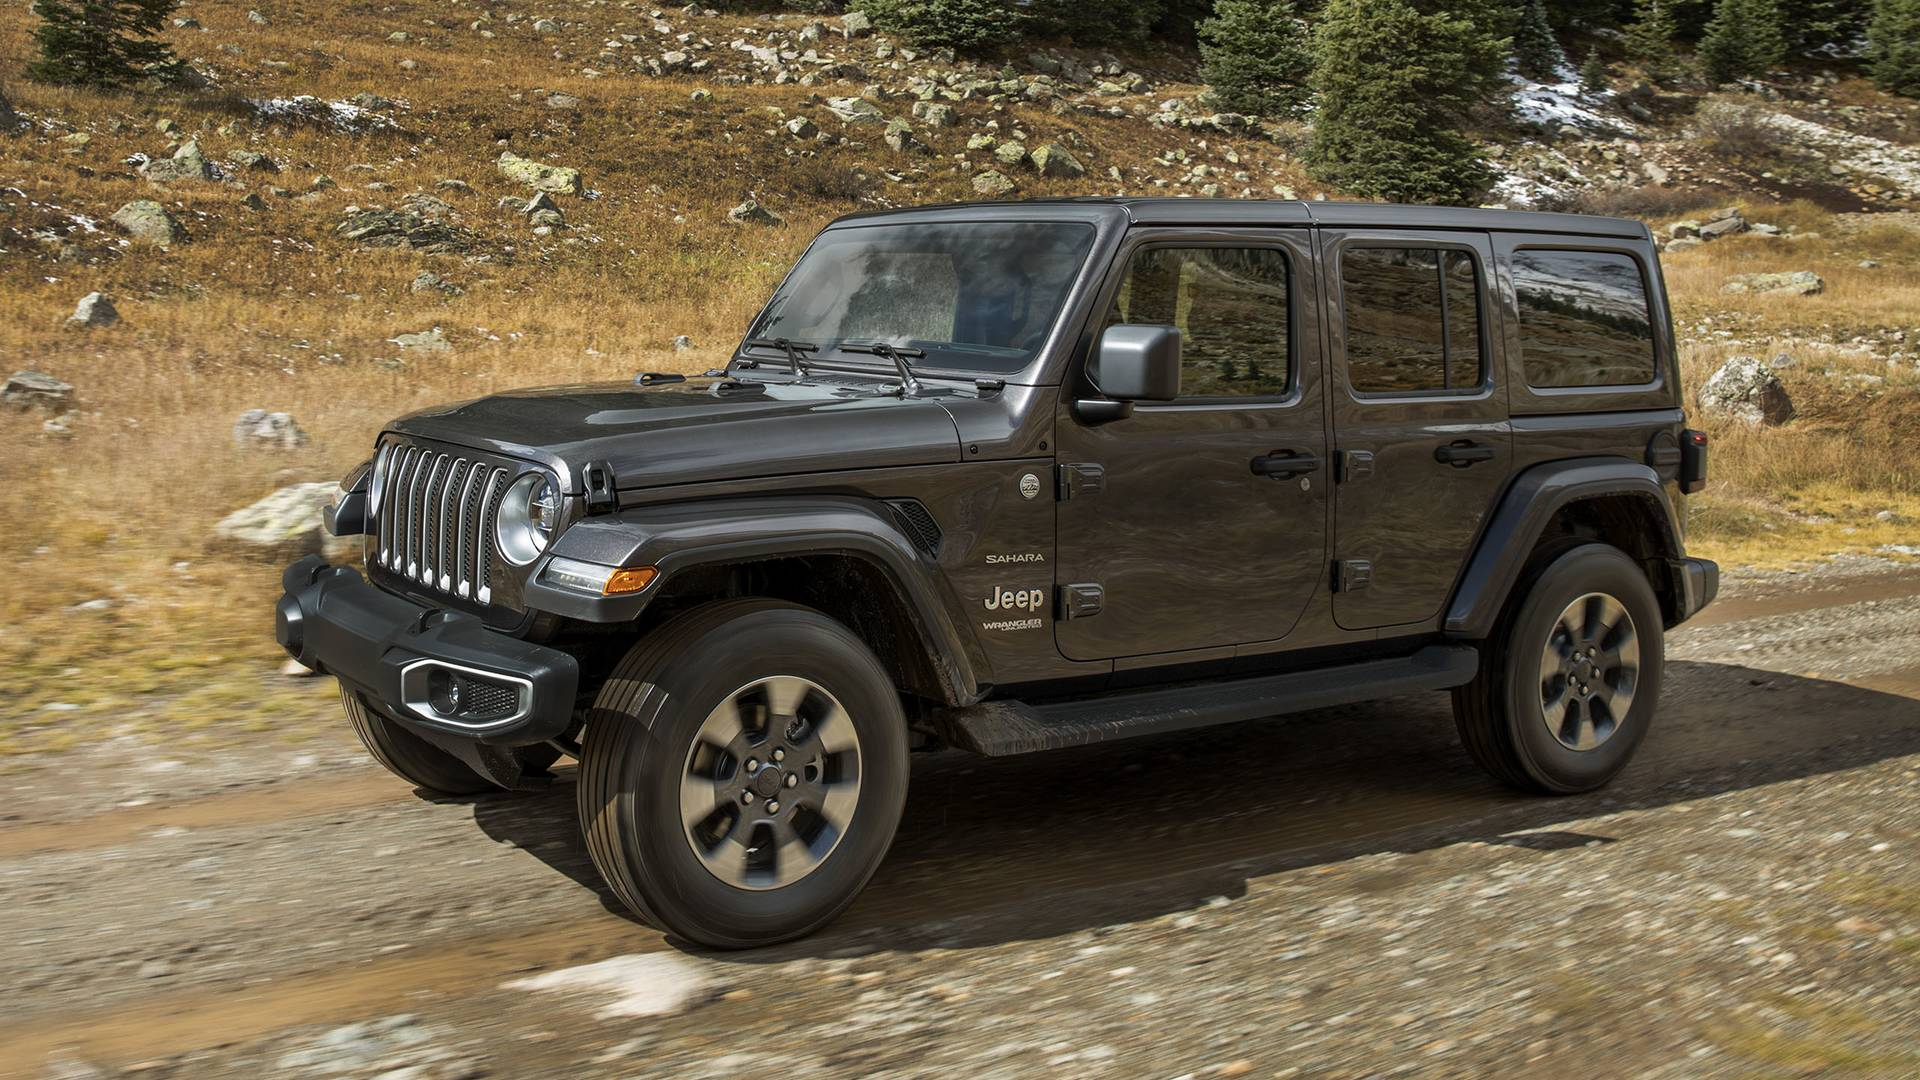 2021 Jeep Wrangler Plug-in Hybrid >> 2020 Jeep Wrangler Hybrid Will Get Parts Built In House